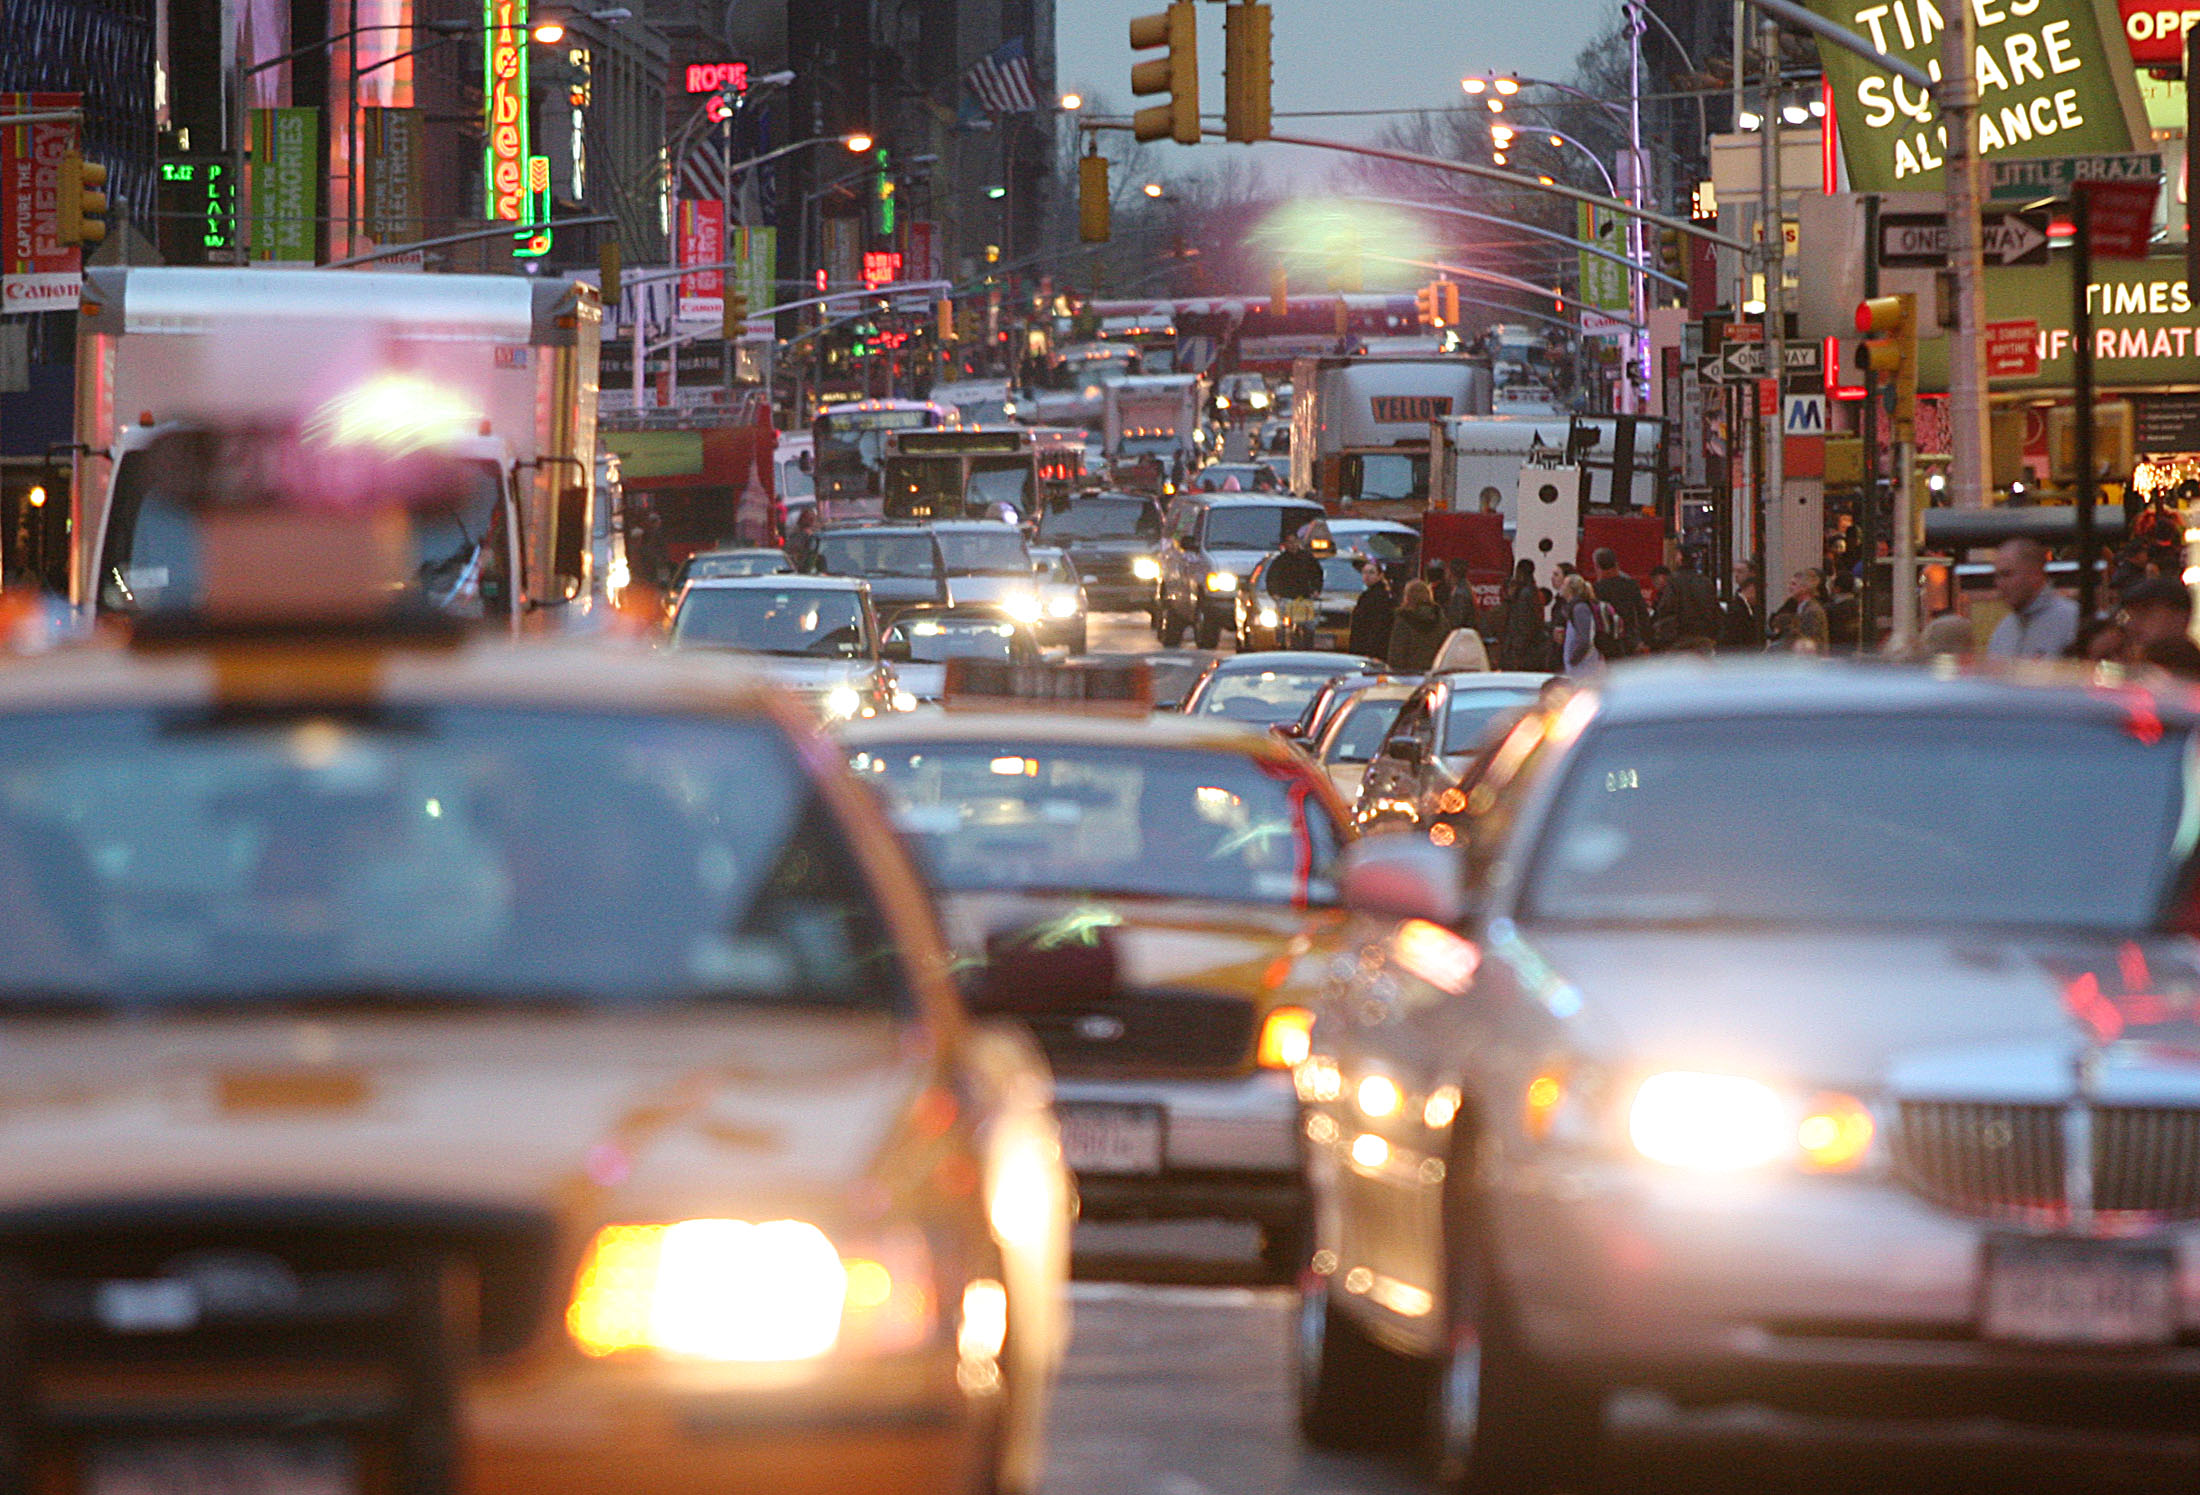 Cars squeeze into any space as they try to get though Time Square in new York City.